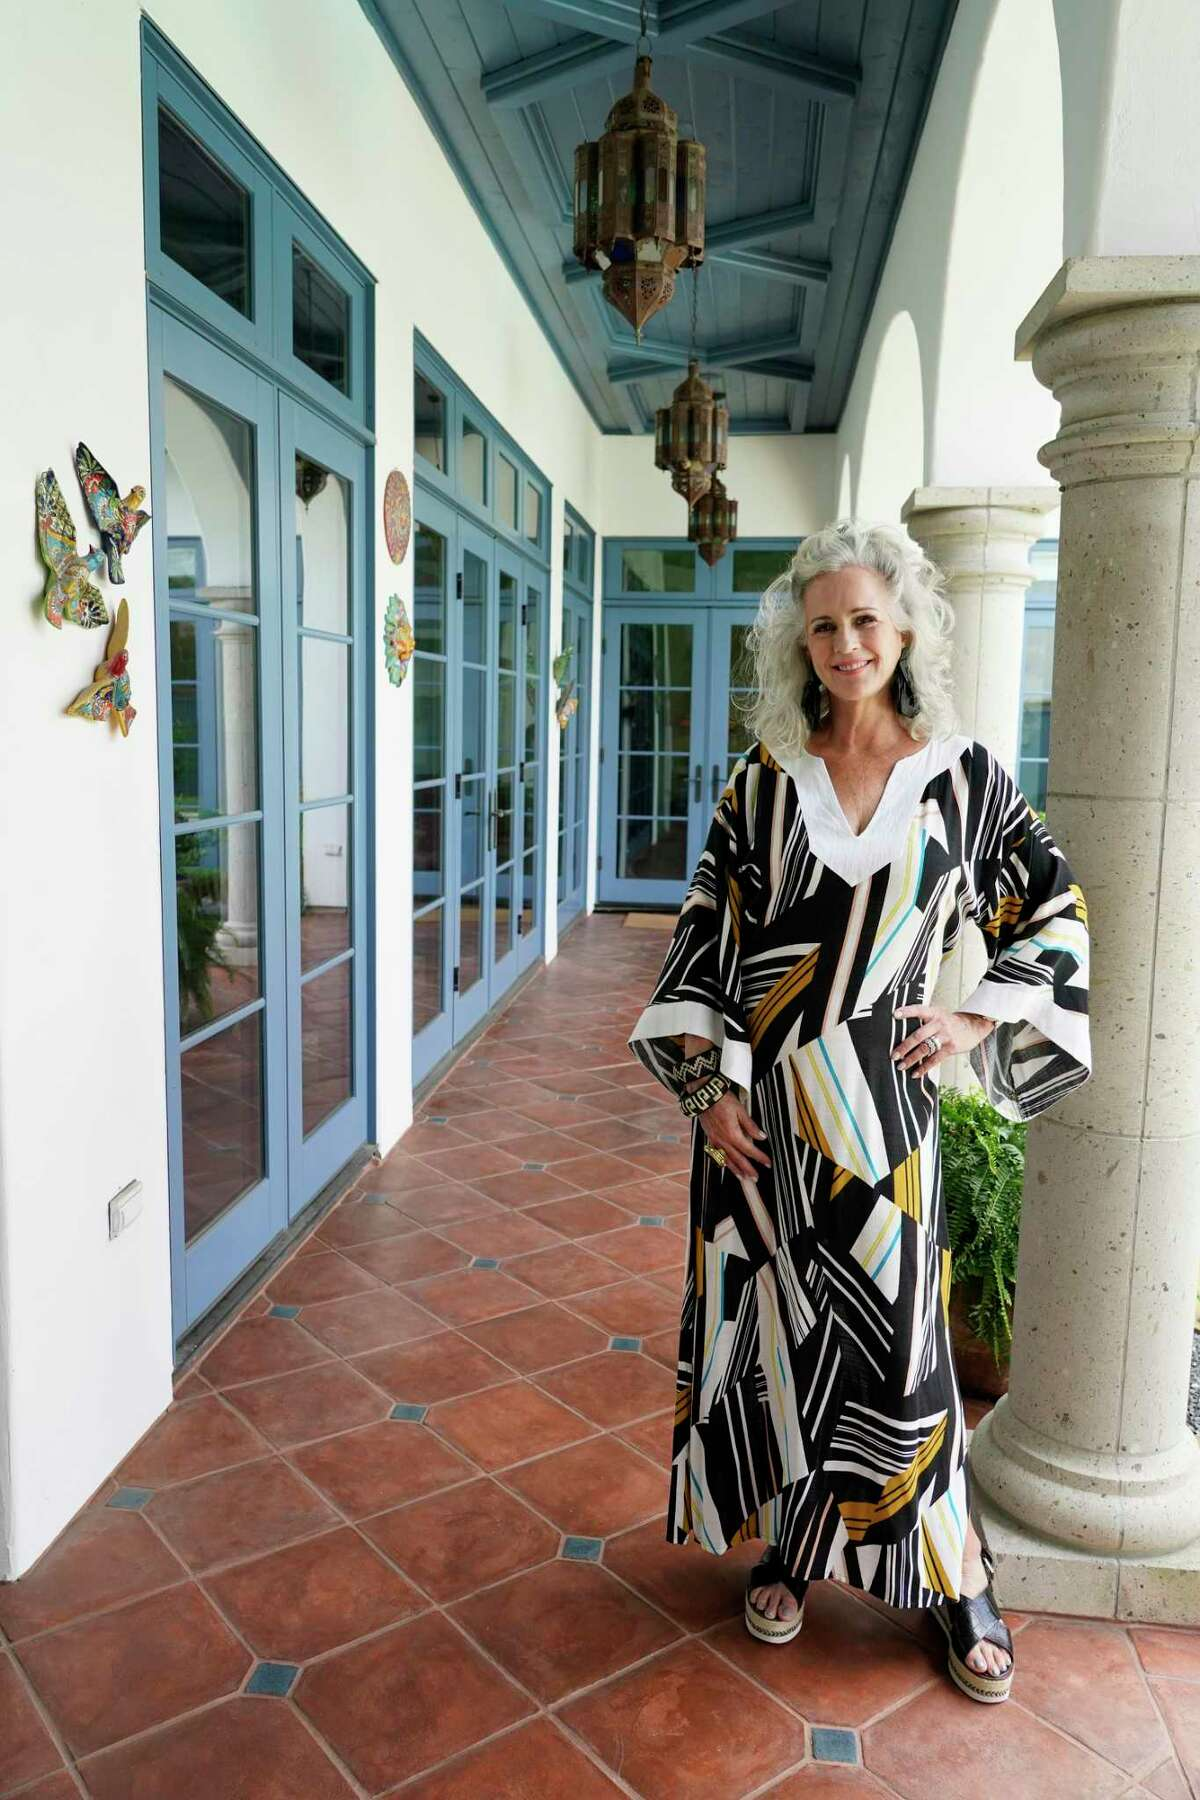 Carla McMahon designs and sells caftans, and has decorated her home in Spanish Colonial style circa 1920s California.